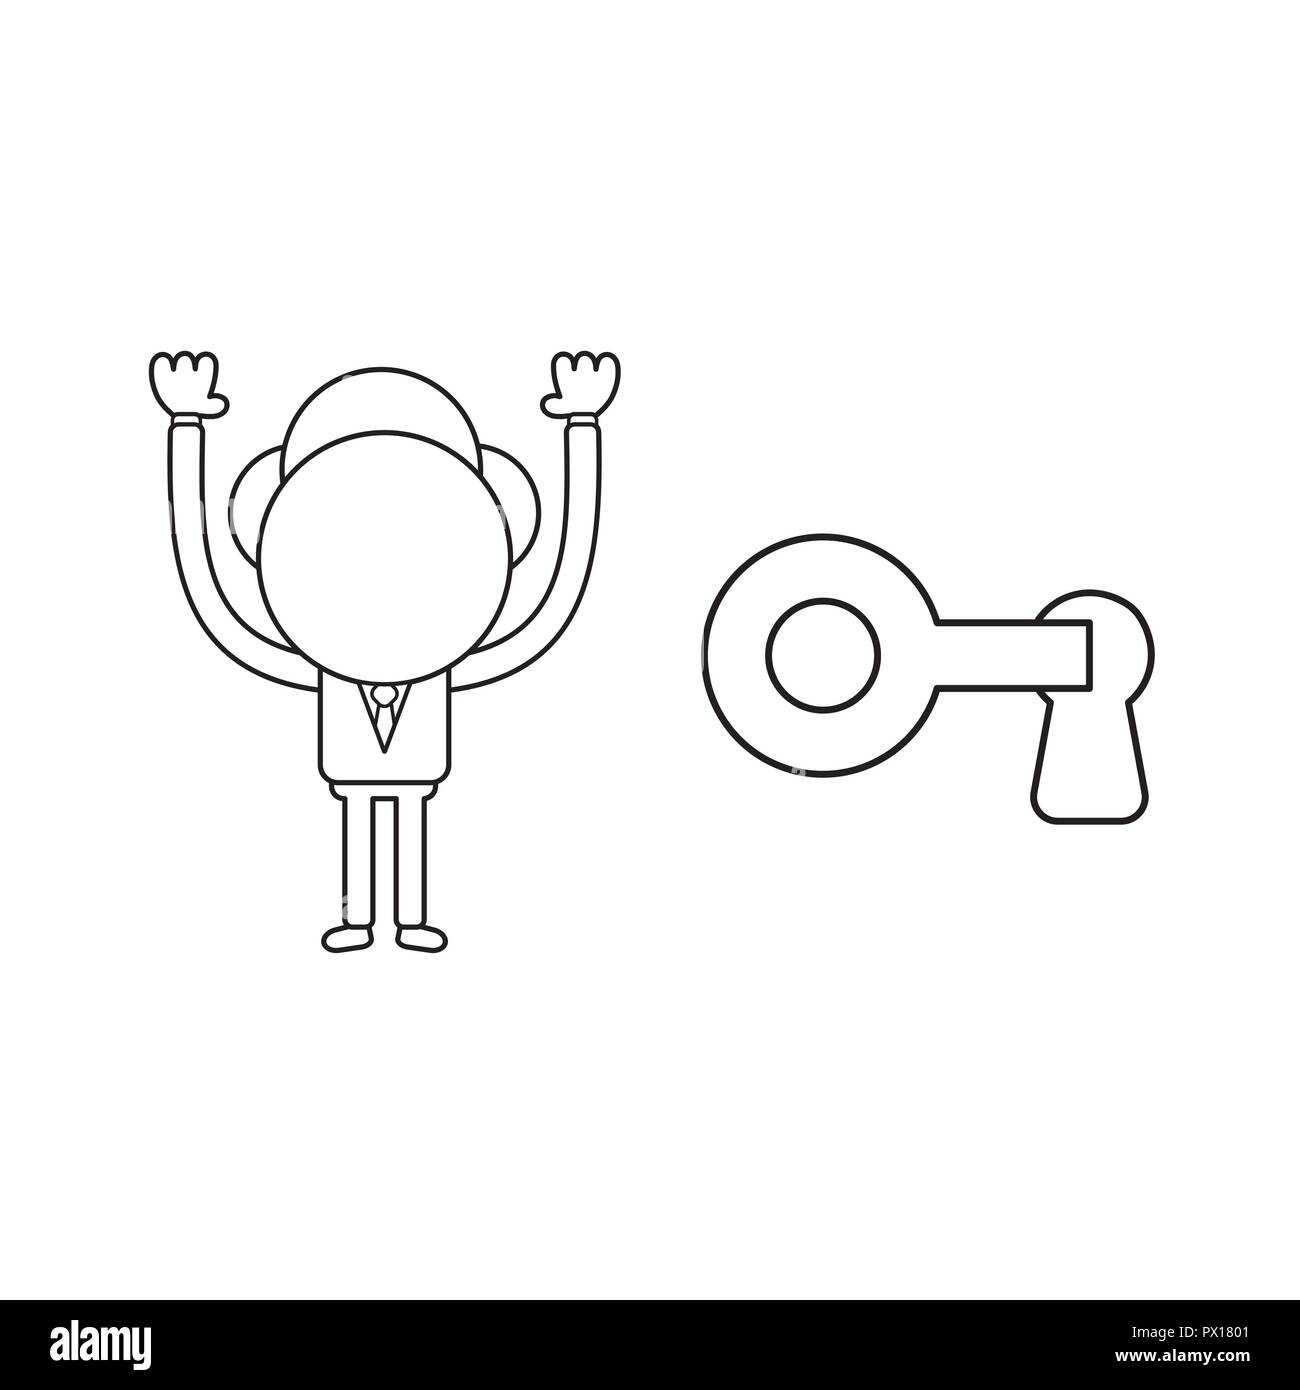 Vector illustration concept of businessman character lock or unlock keyhole with key. Black outline. - Stock Image